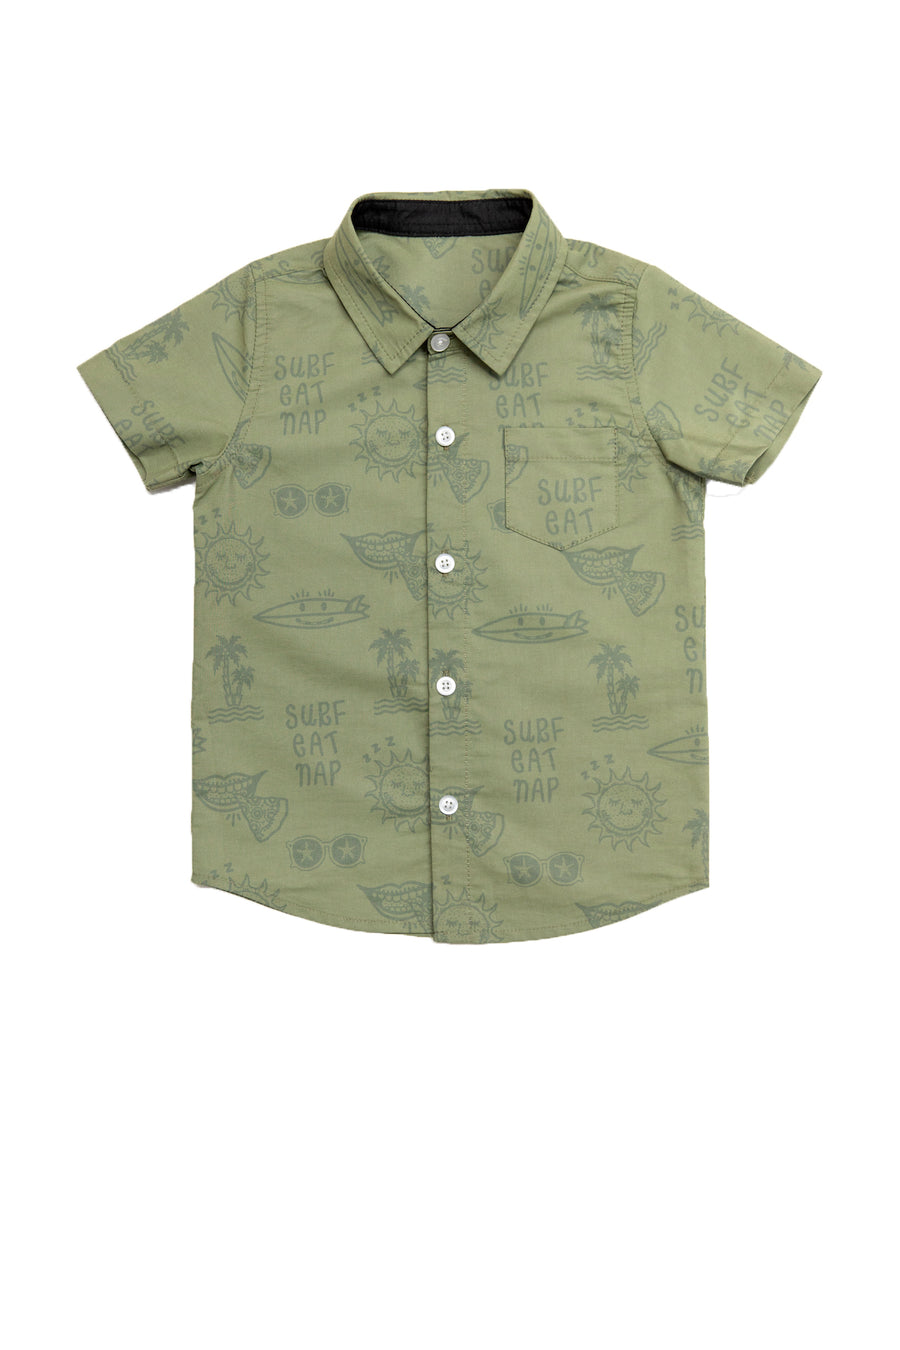 Surf Eat Nap Button Up Shirt | Seaweed Green